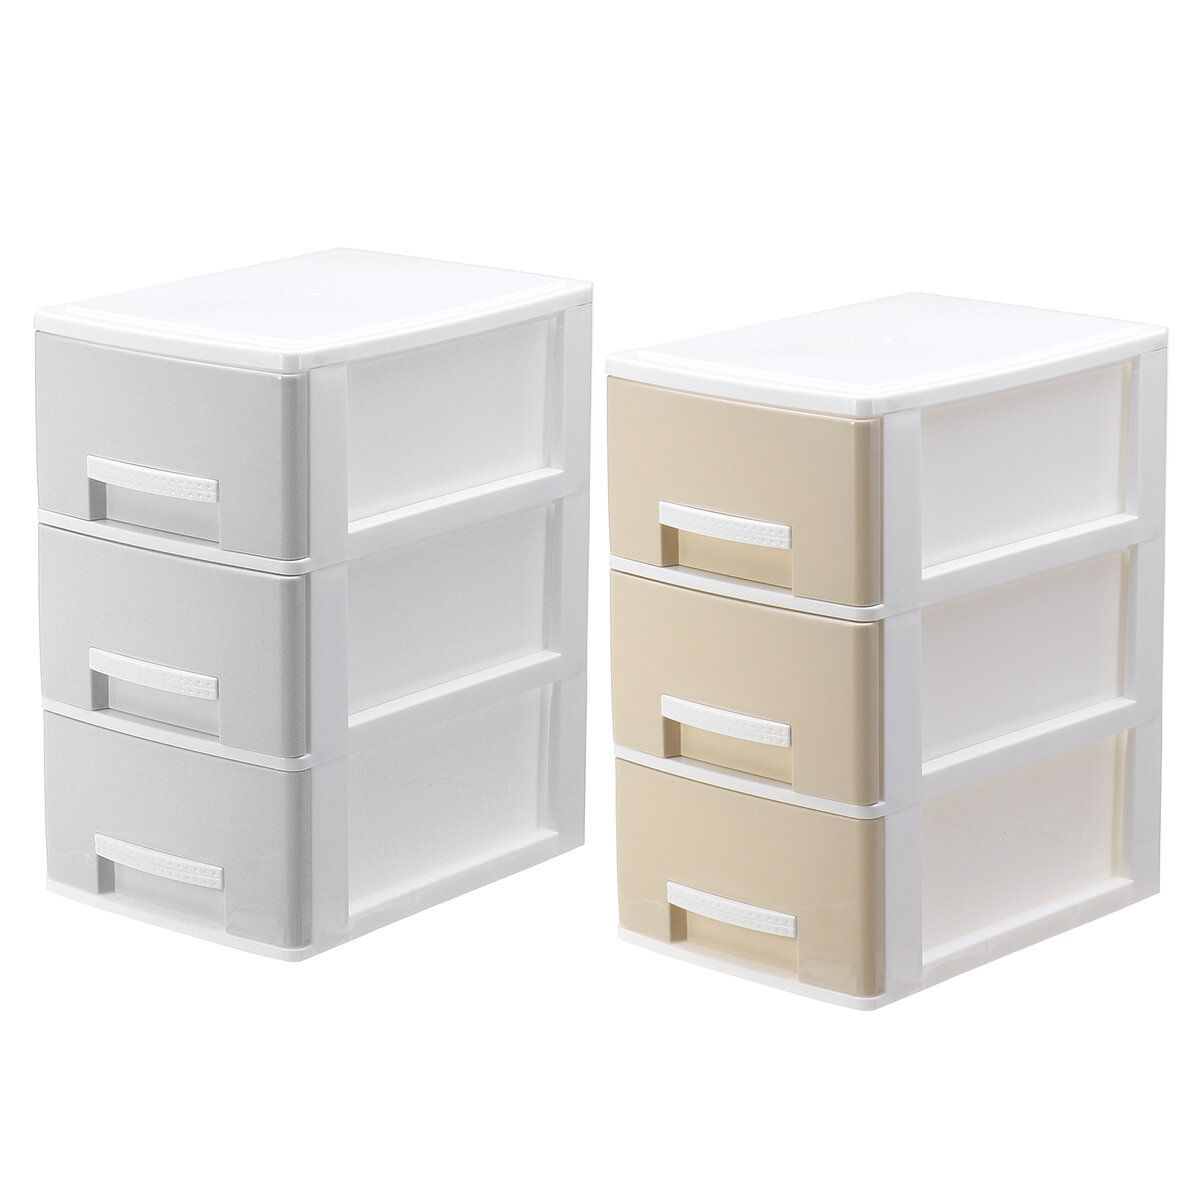 3 Layers File Cabinet Desk Organizer Box Cosmetic Makeup Storage Drawers Home Bedside Office